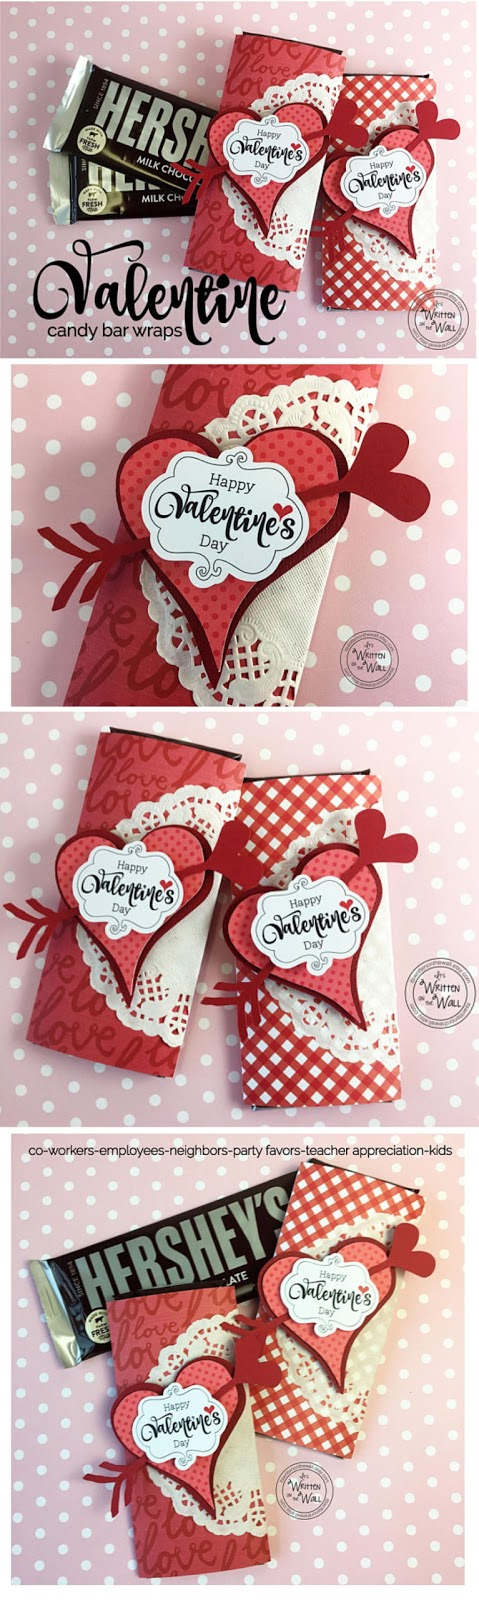 It\'s Written on the Wall: Happy Valentine\'s Day Chocolate Treat ...